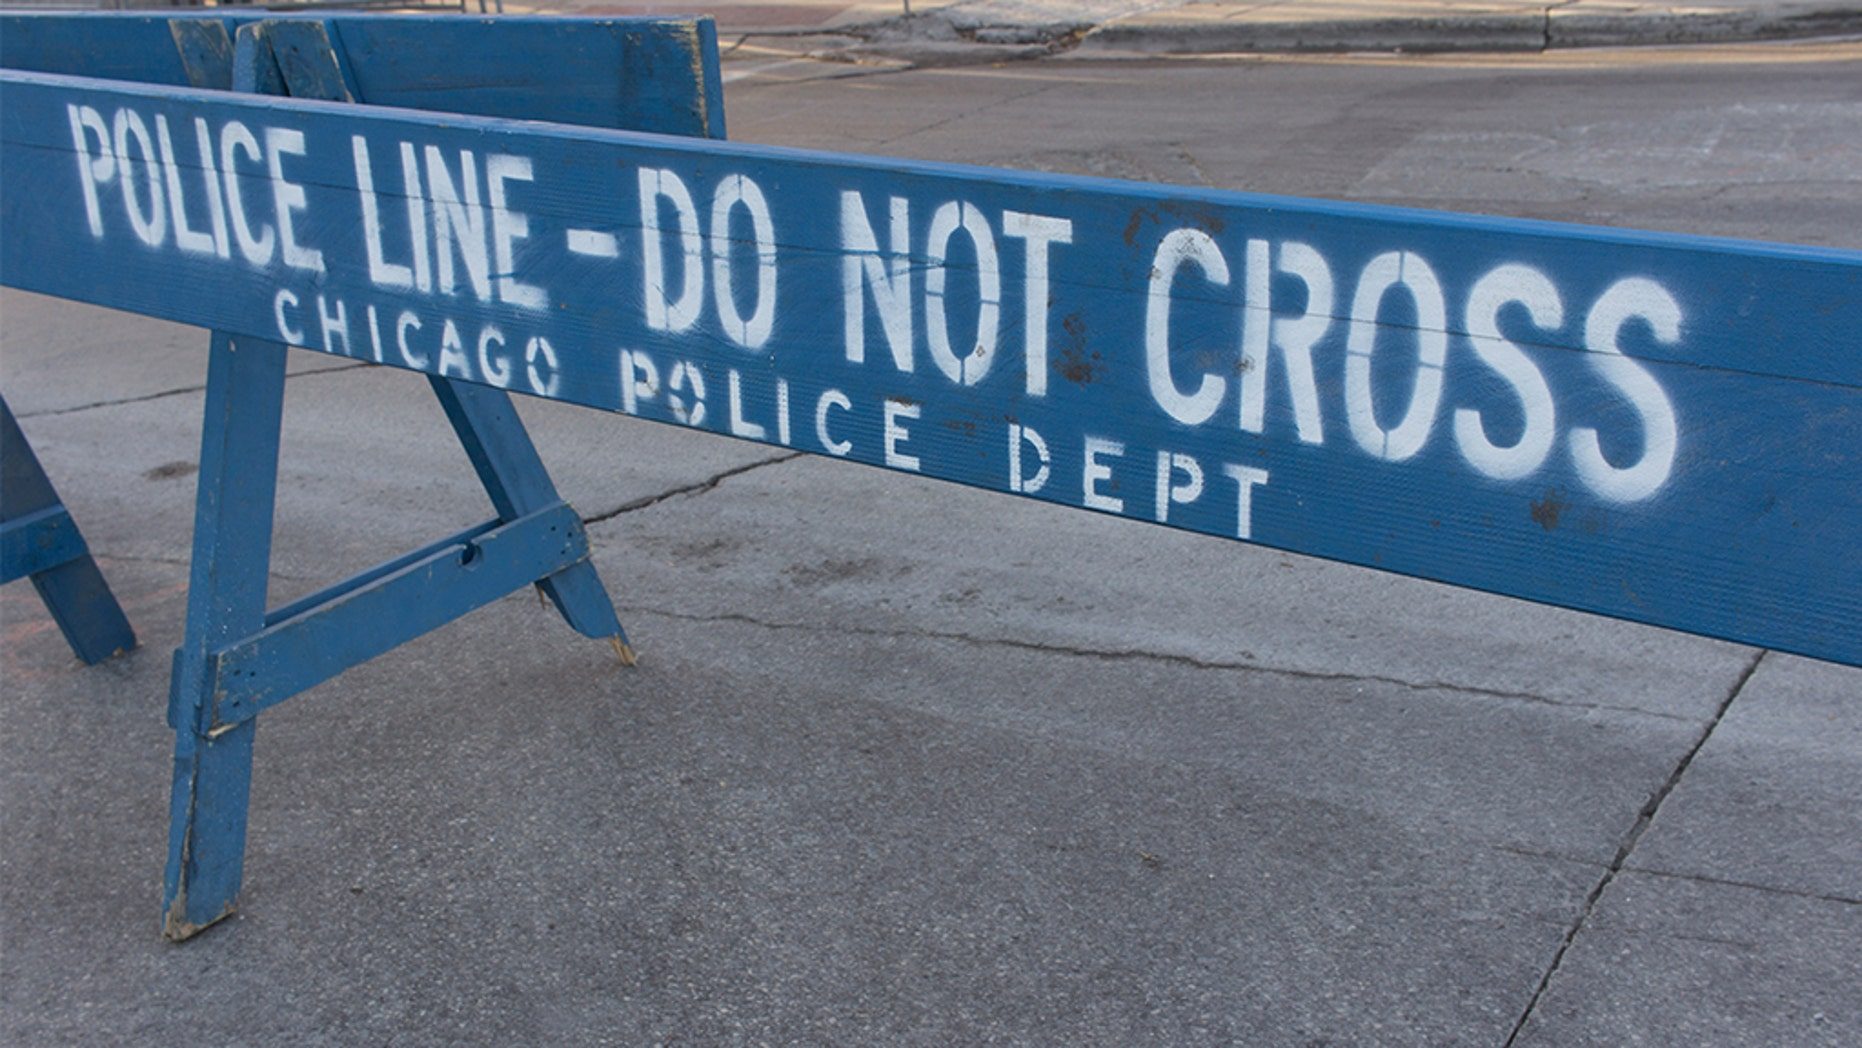 Chicago has some 60 gangs, with several hundred factions within them. The city has had more than 450 homicides this year, many of which police have linked to gangs.